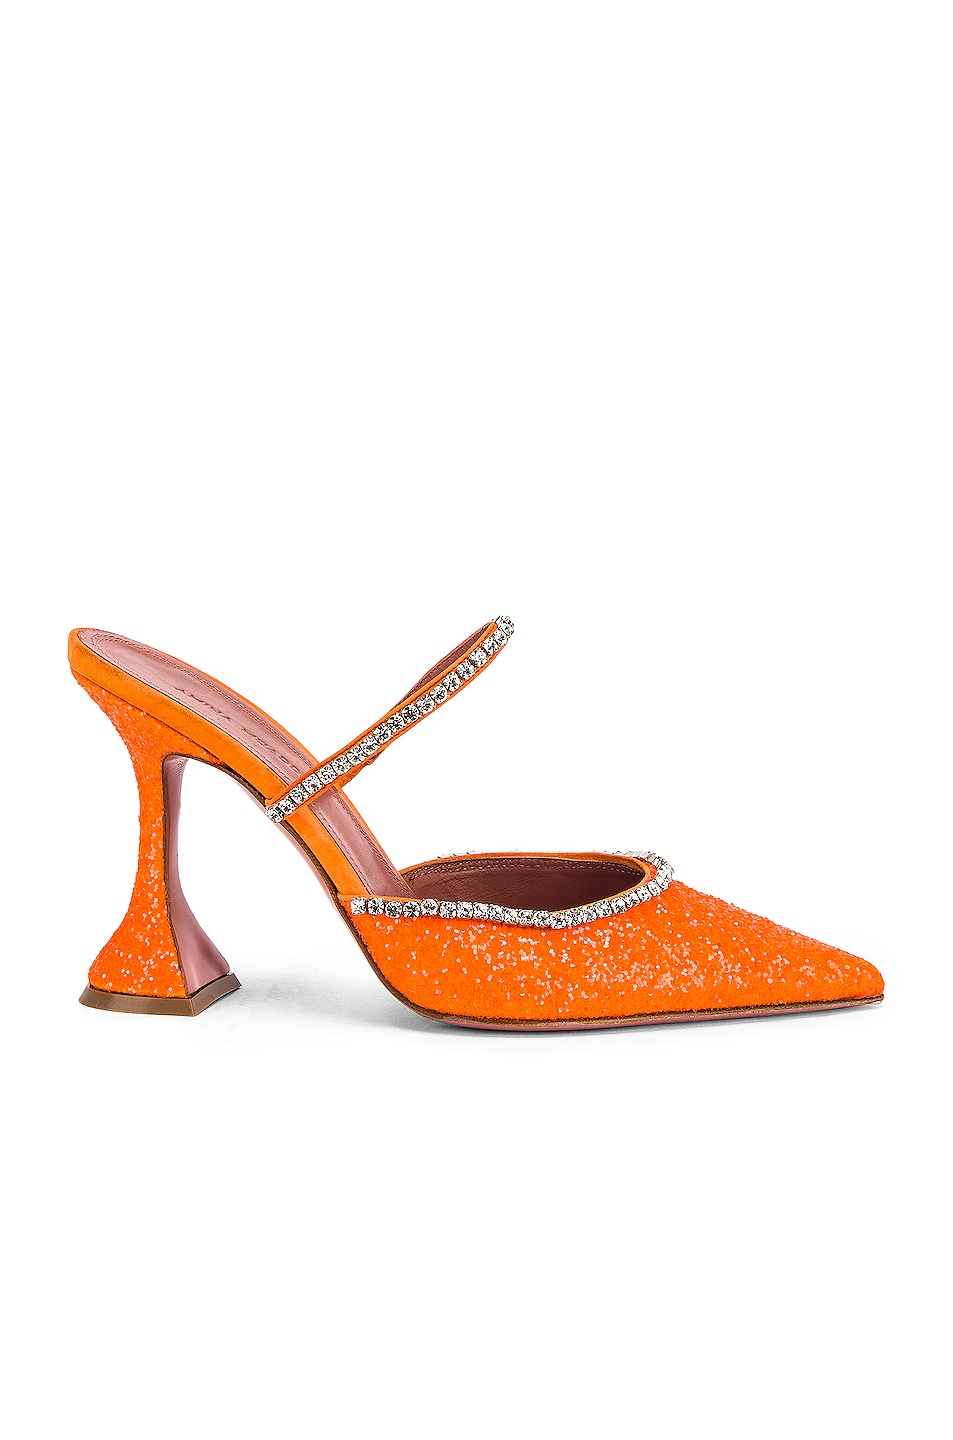 Image 1 of AMINA MUADDI Gilda Mule in Orange Fluo Glitter